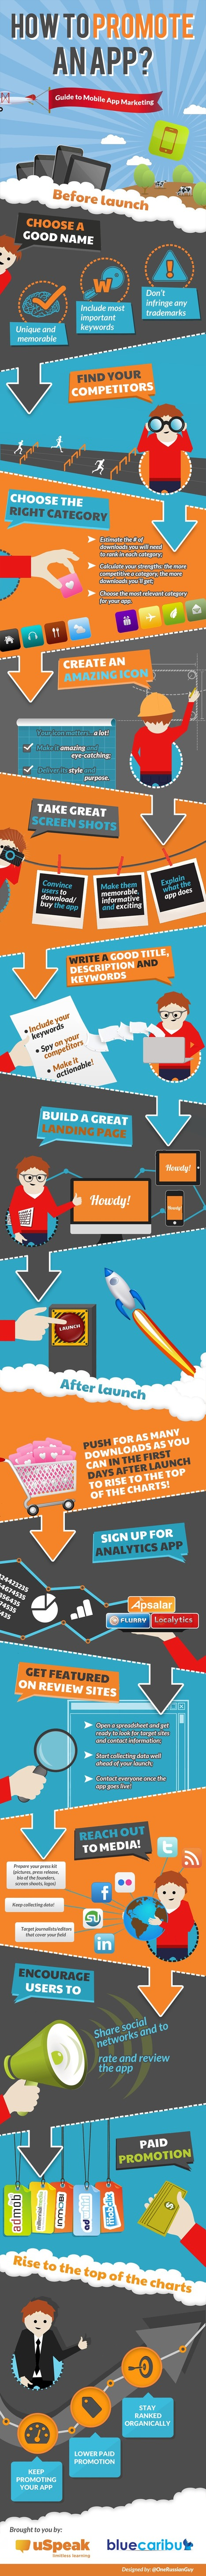 How to Promote an App? Guide to Mobile App Marketing | Solutions for a Mobile World | Scoop.it